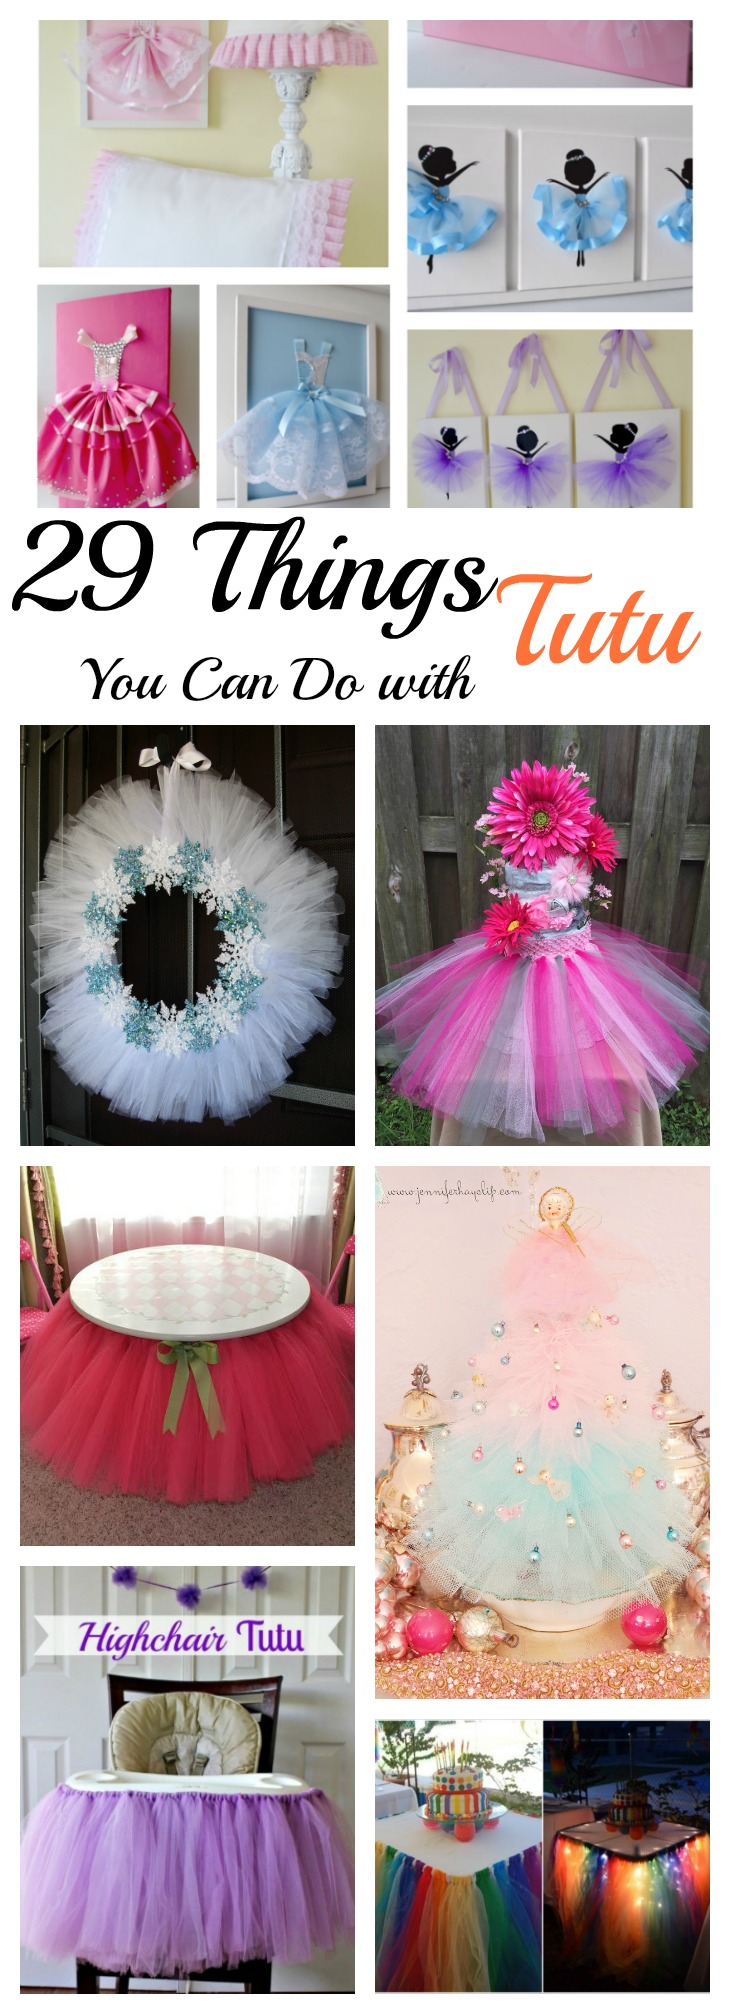 29 Things You Can Do with a Tutu